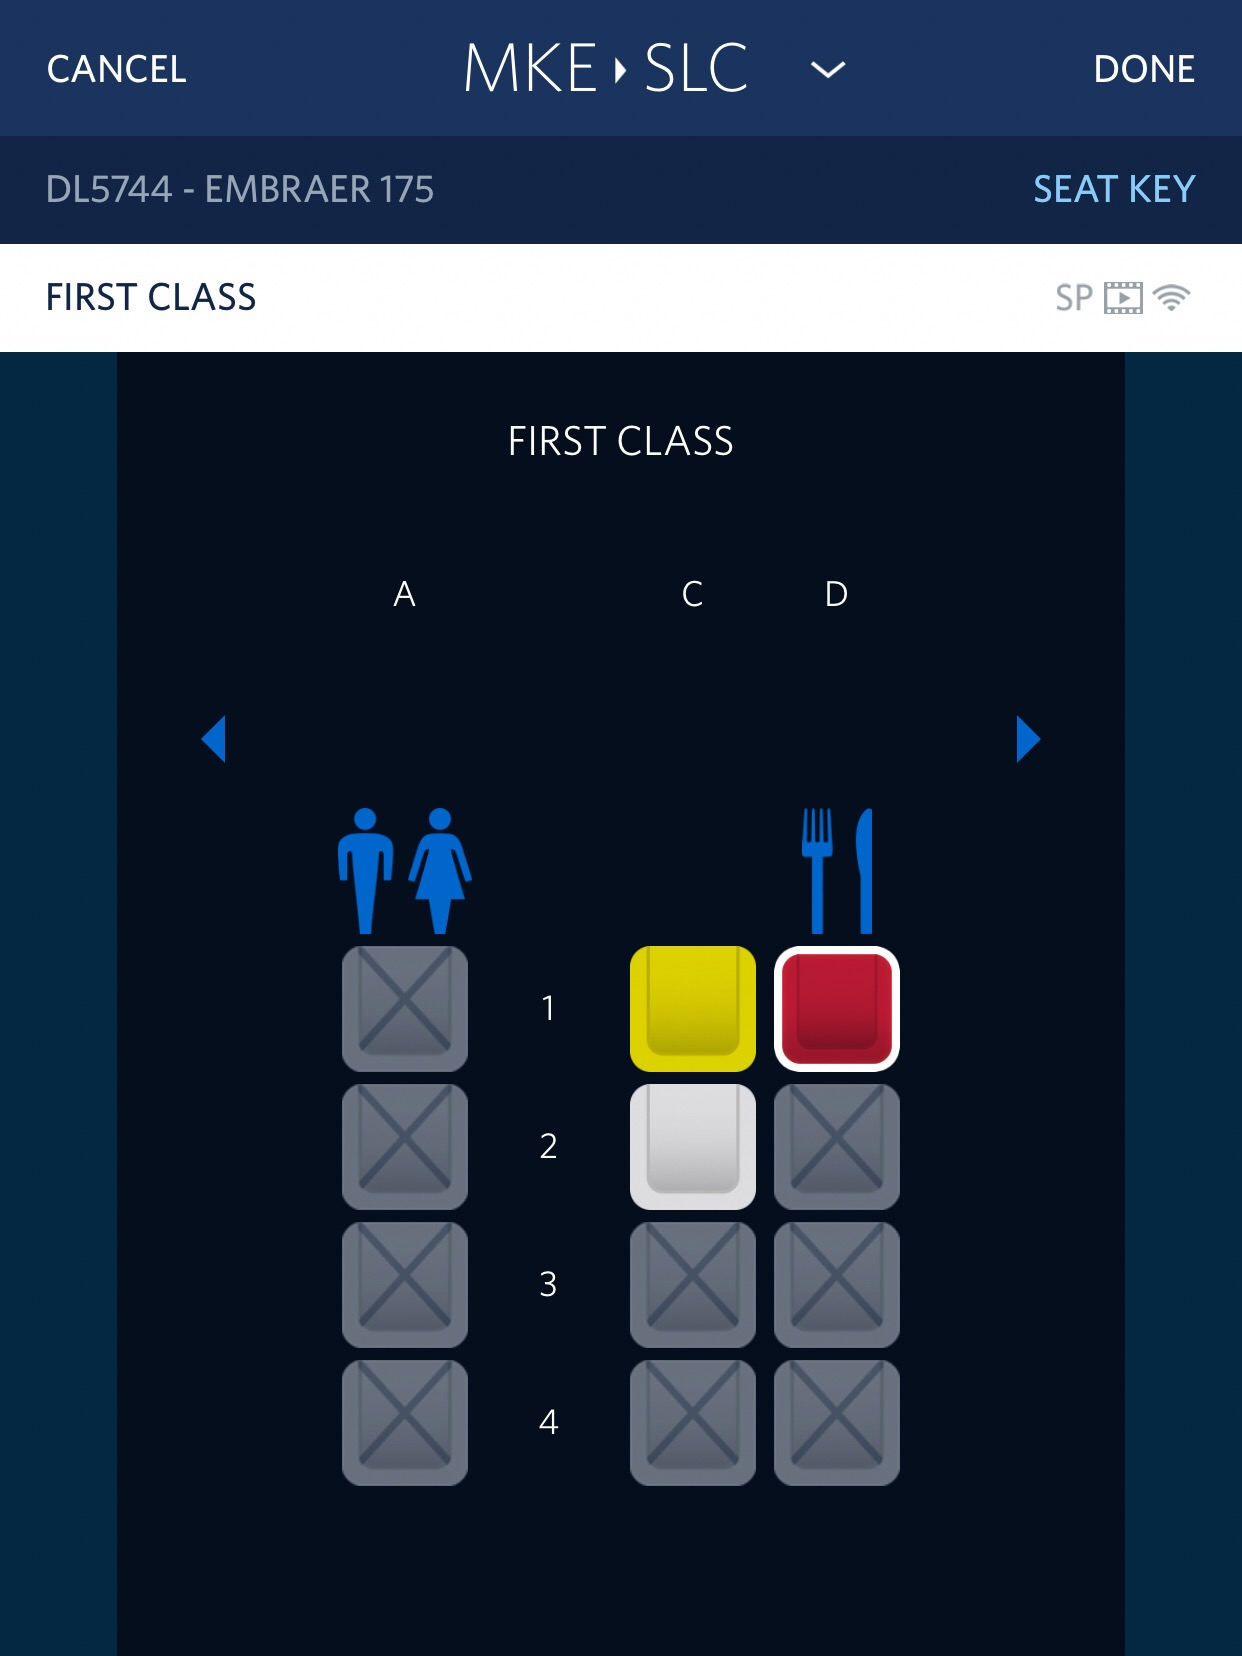 Delta's seat selection is extremely easy in the App. It doesn't redirect you to the website like some airline apps do. My daughter and I were upgraded at the beginning of the Gold Medallion upgrade window 72 hours prior to departure.